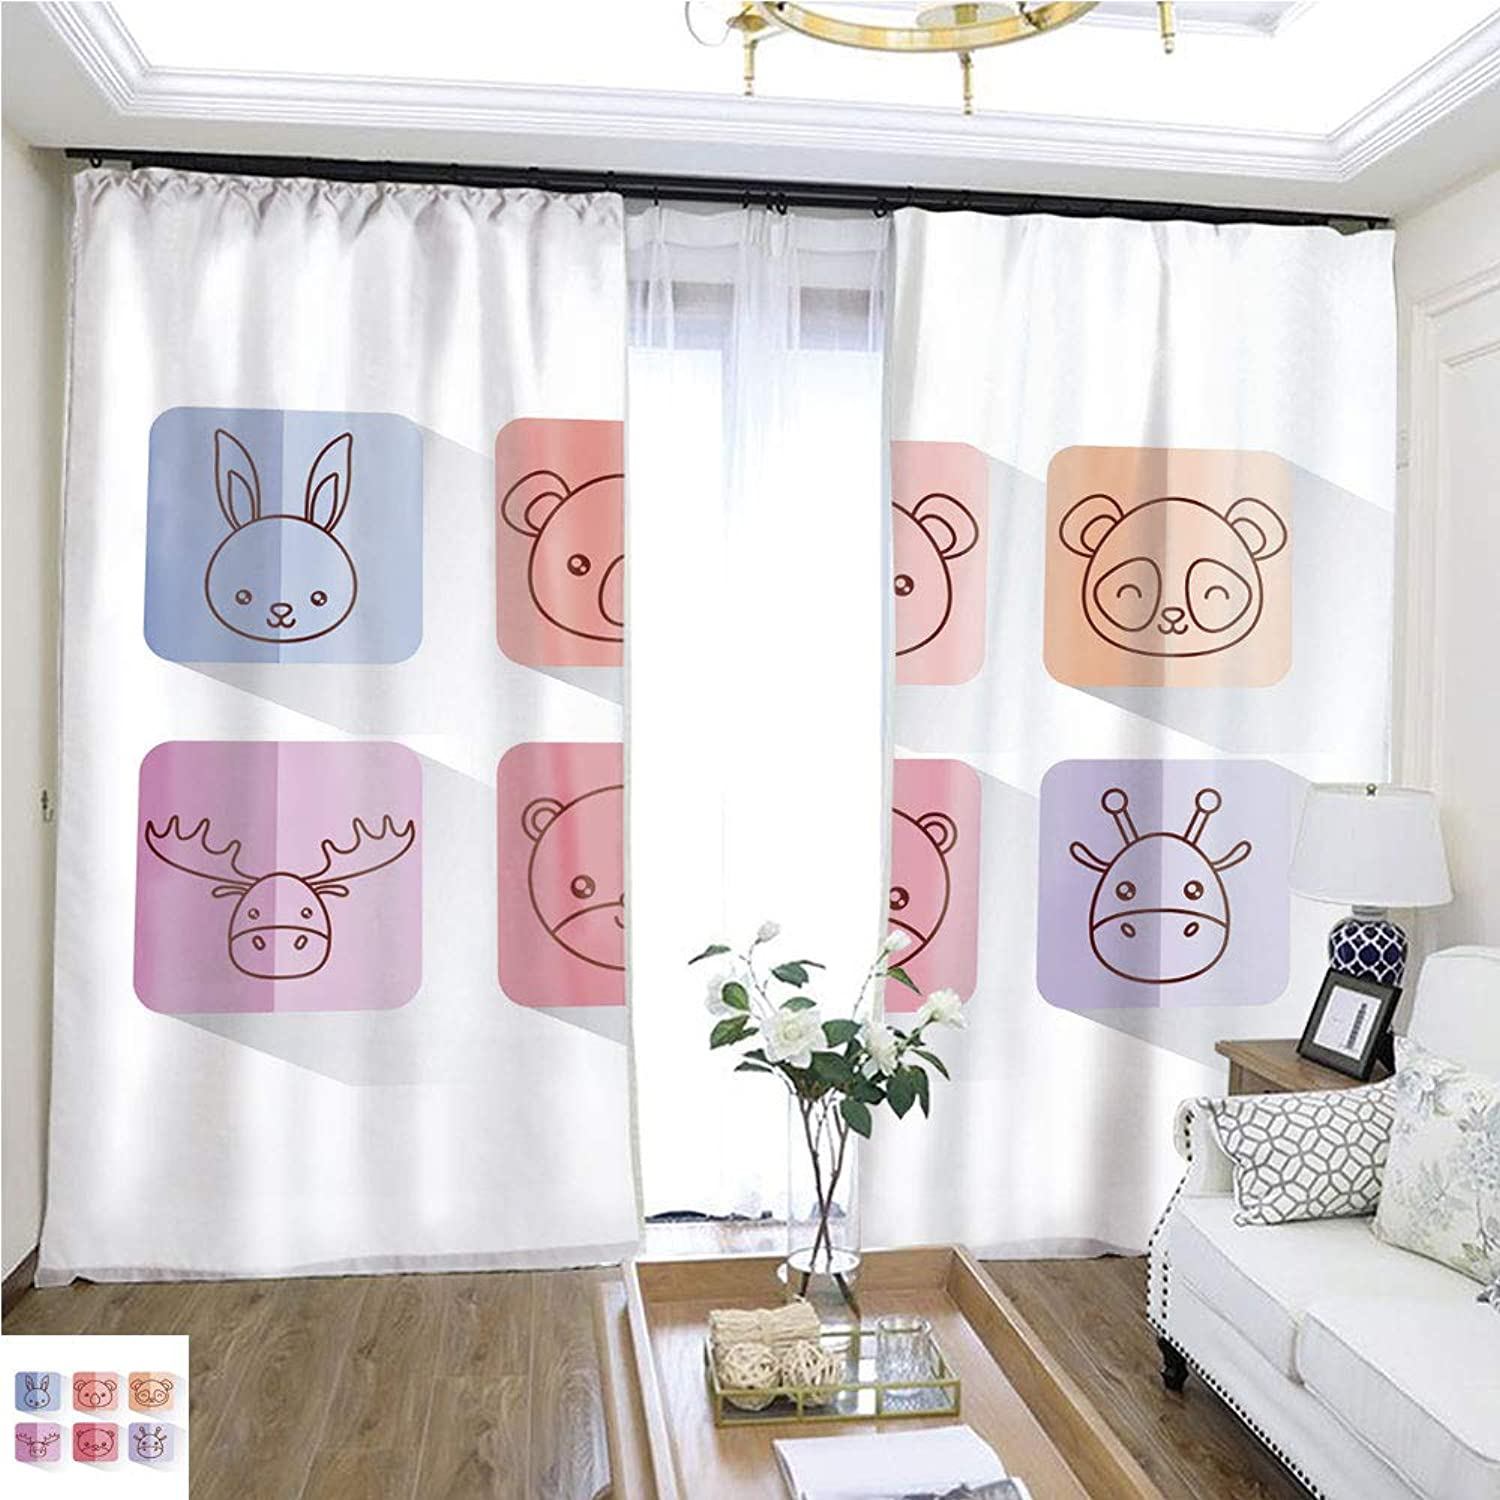 Air Port Screen Cute Animals design11118 W108 x L83 Create Warmth in Winter Highprecision Curtains for bedrooms Living Rooms Kitchens etc.